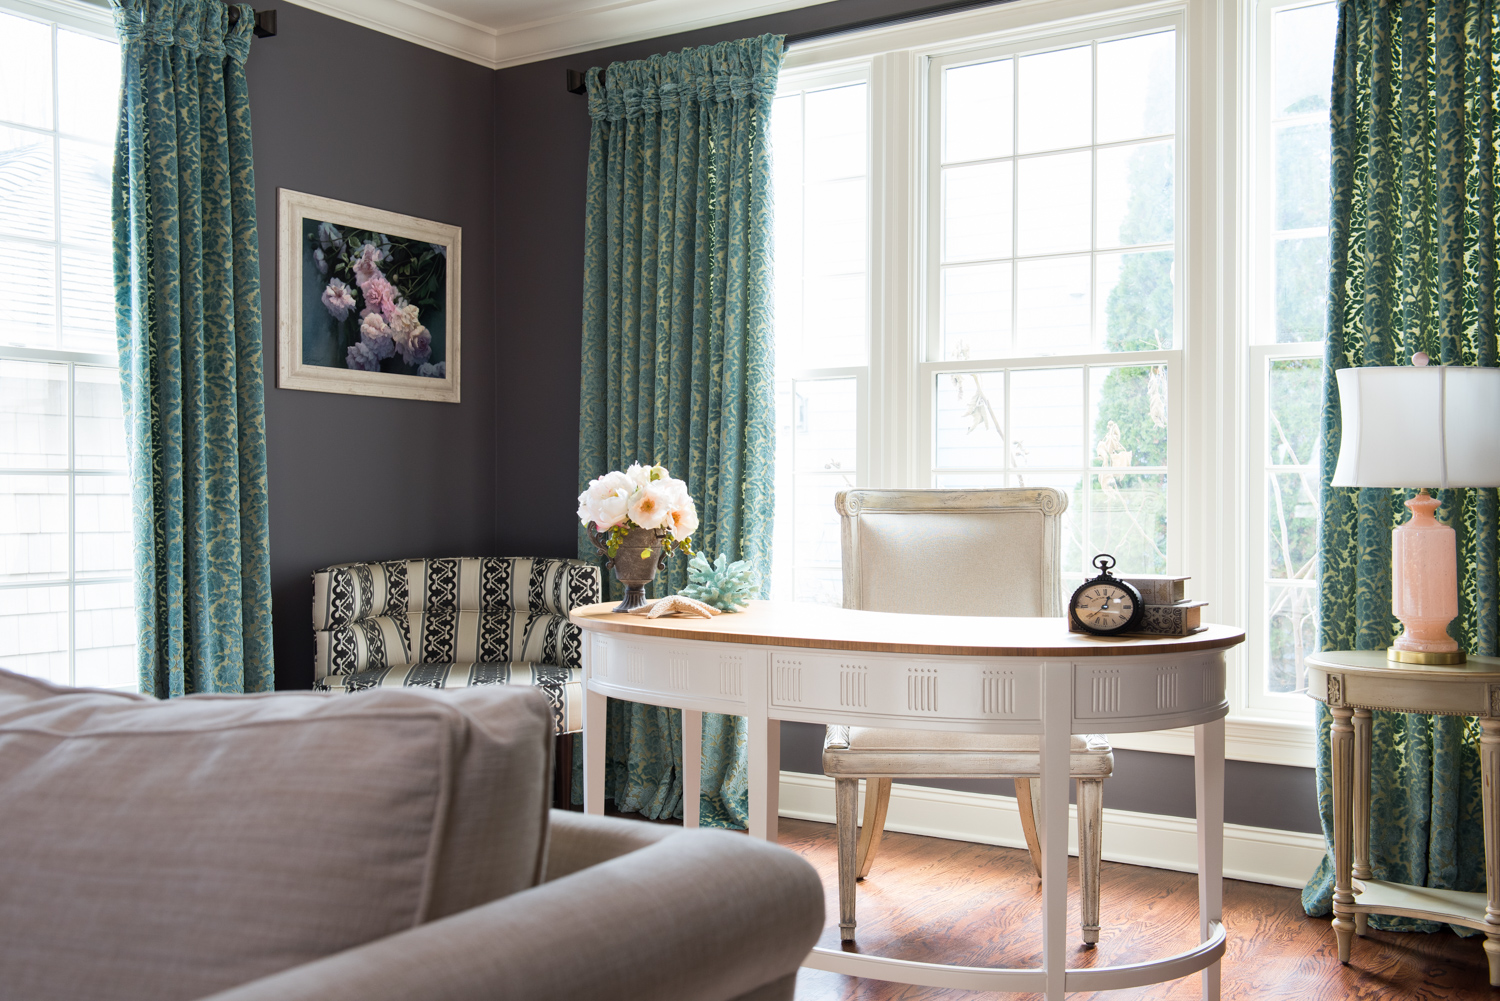 interior-design-color-window-treatments-franklin-lakes-new-jersey-8.jpg